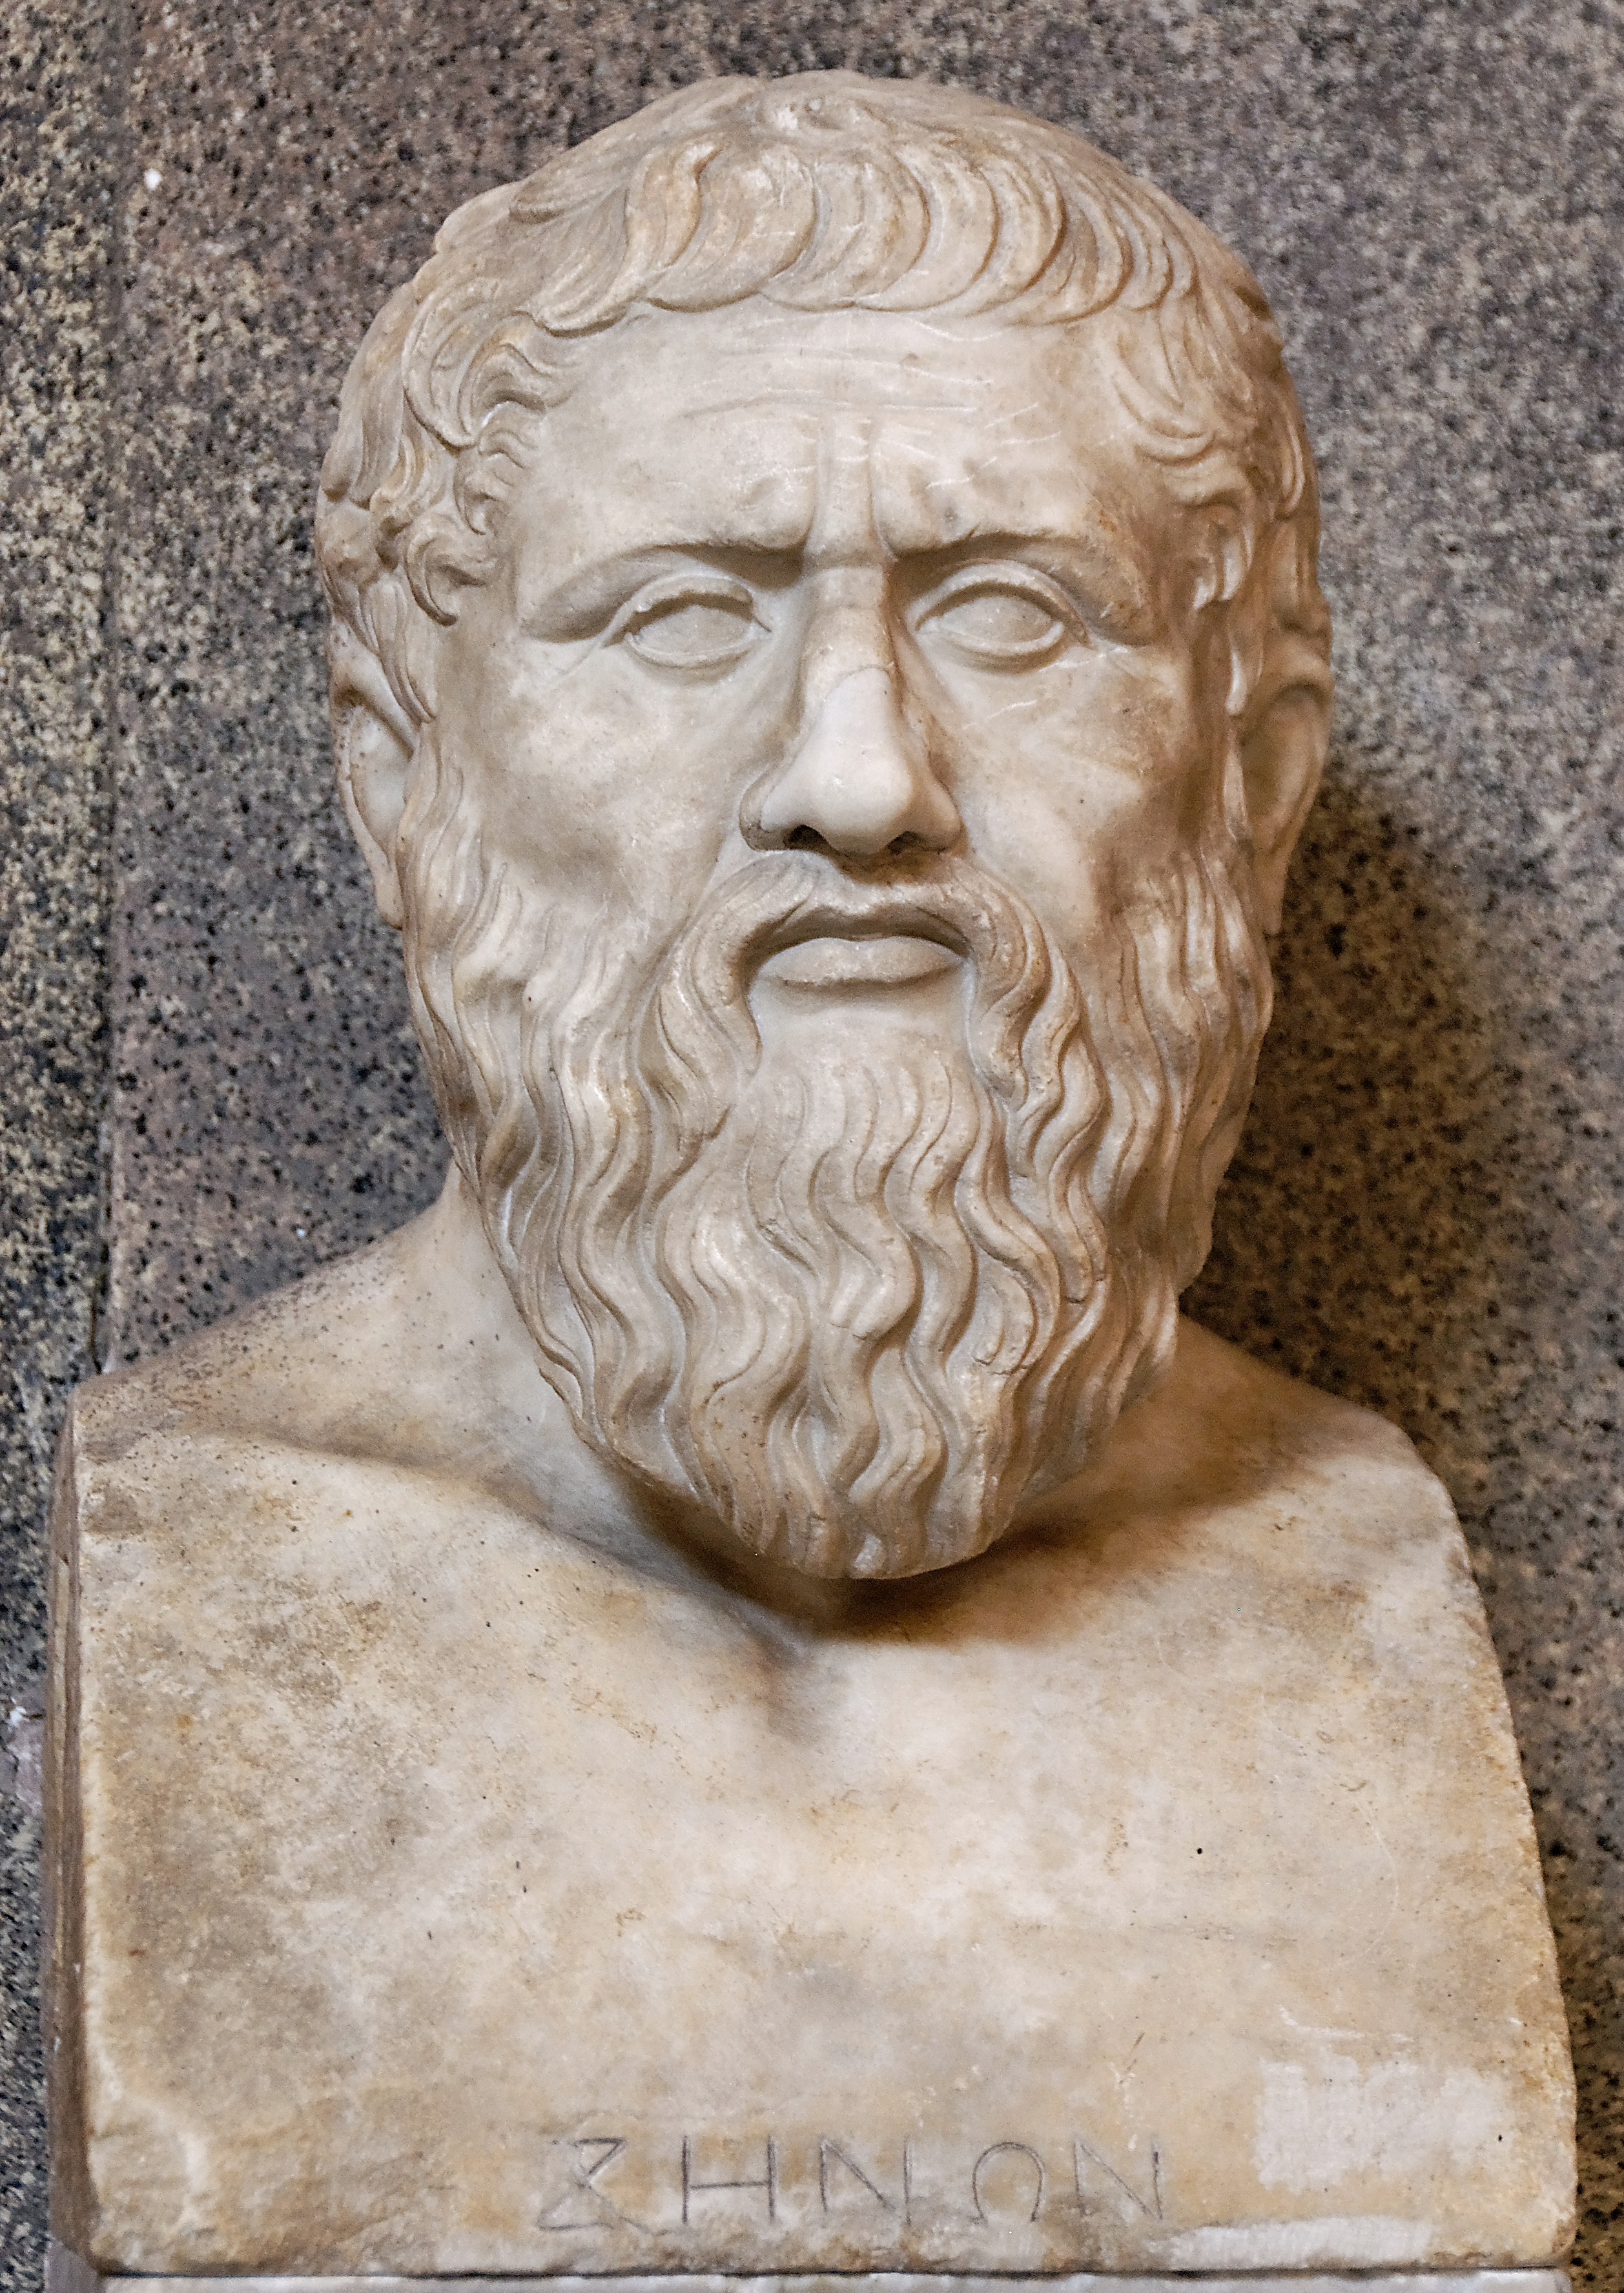 history of plato Plato's recollections of socrates' lived-out philosophy and style of relentless questioning became the basis for his early dialogues, which historians agree offer the most accurate available.